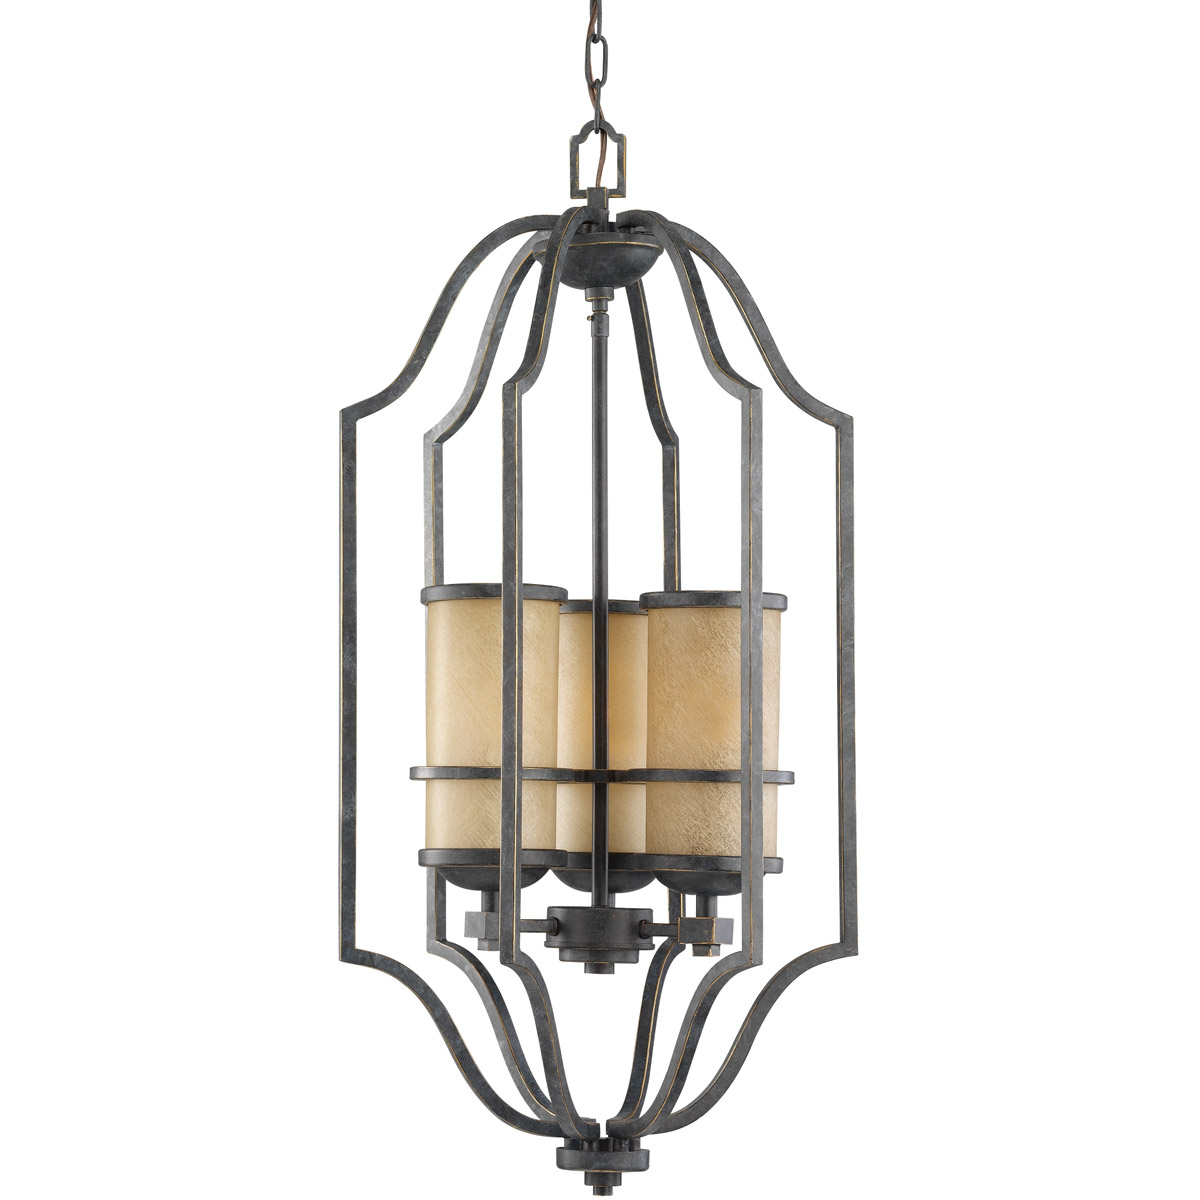 Sea Gull Lighting Roslyn 3 Light Foyer Pendant in Flemish Bronze 51521-845 photo